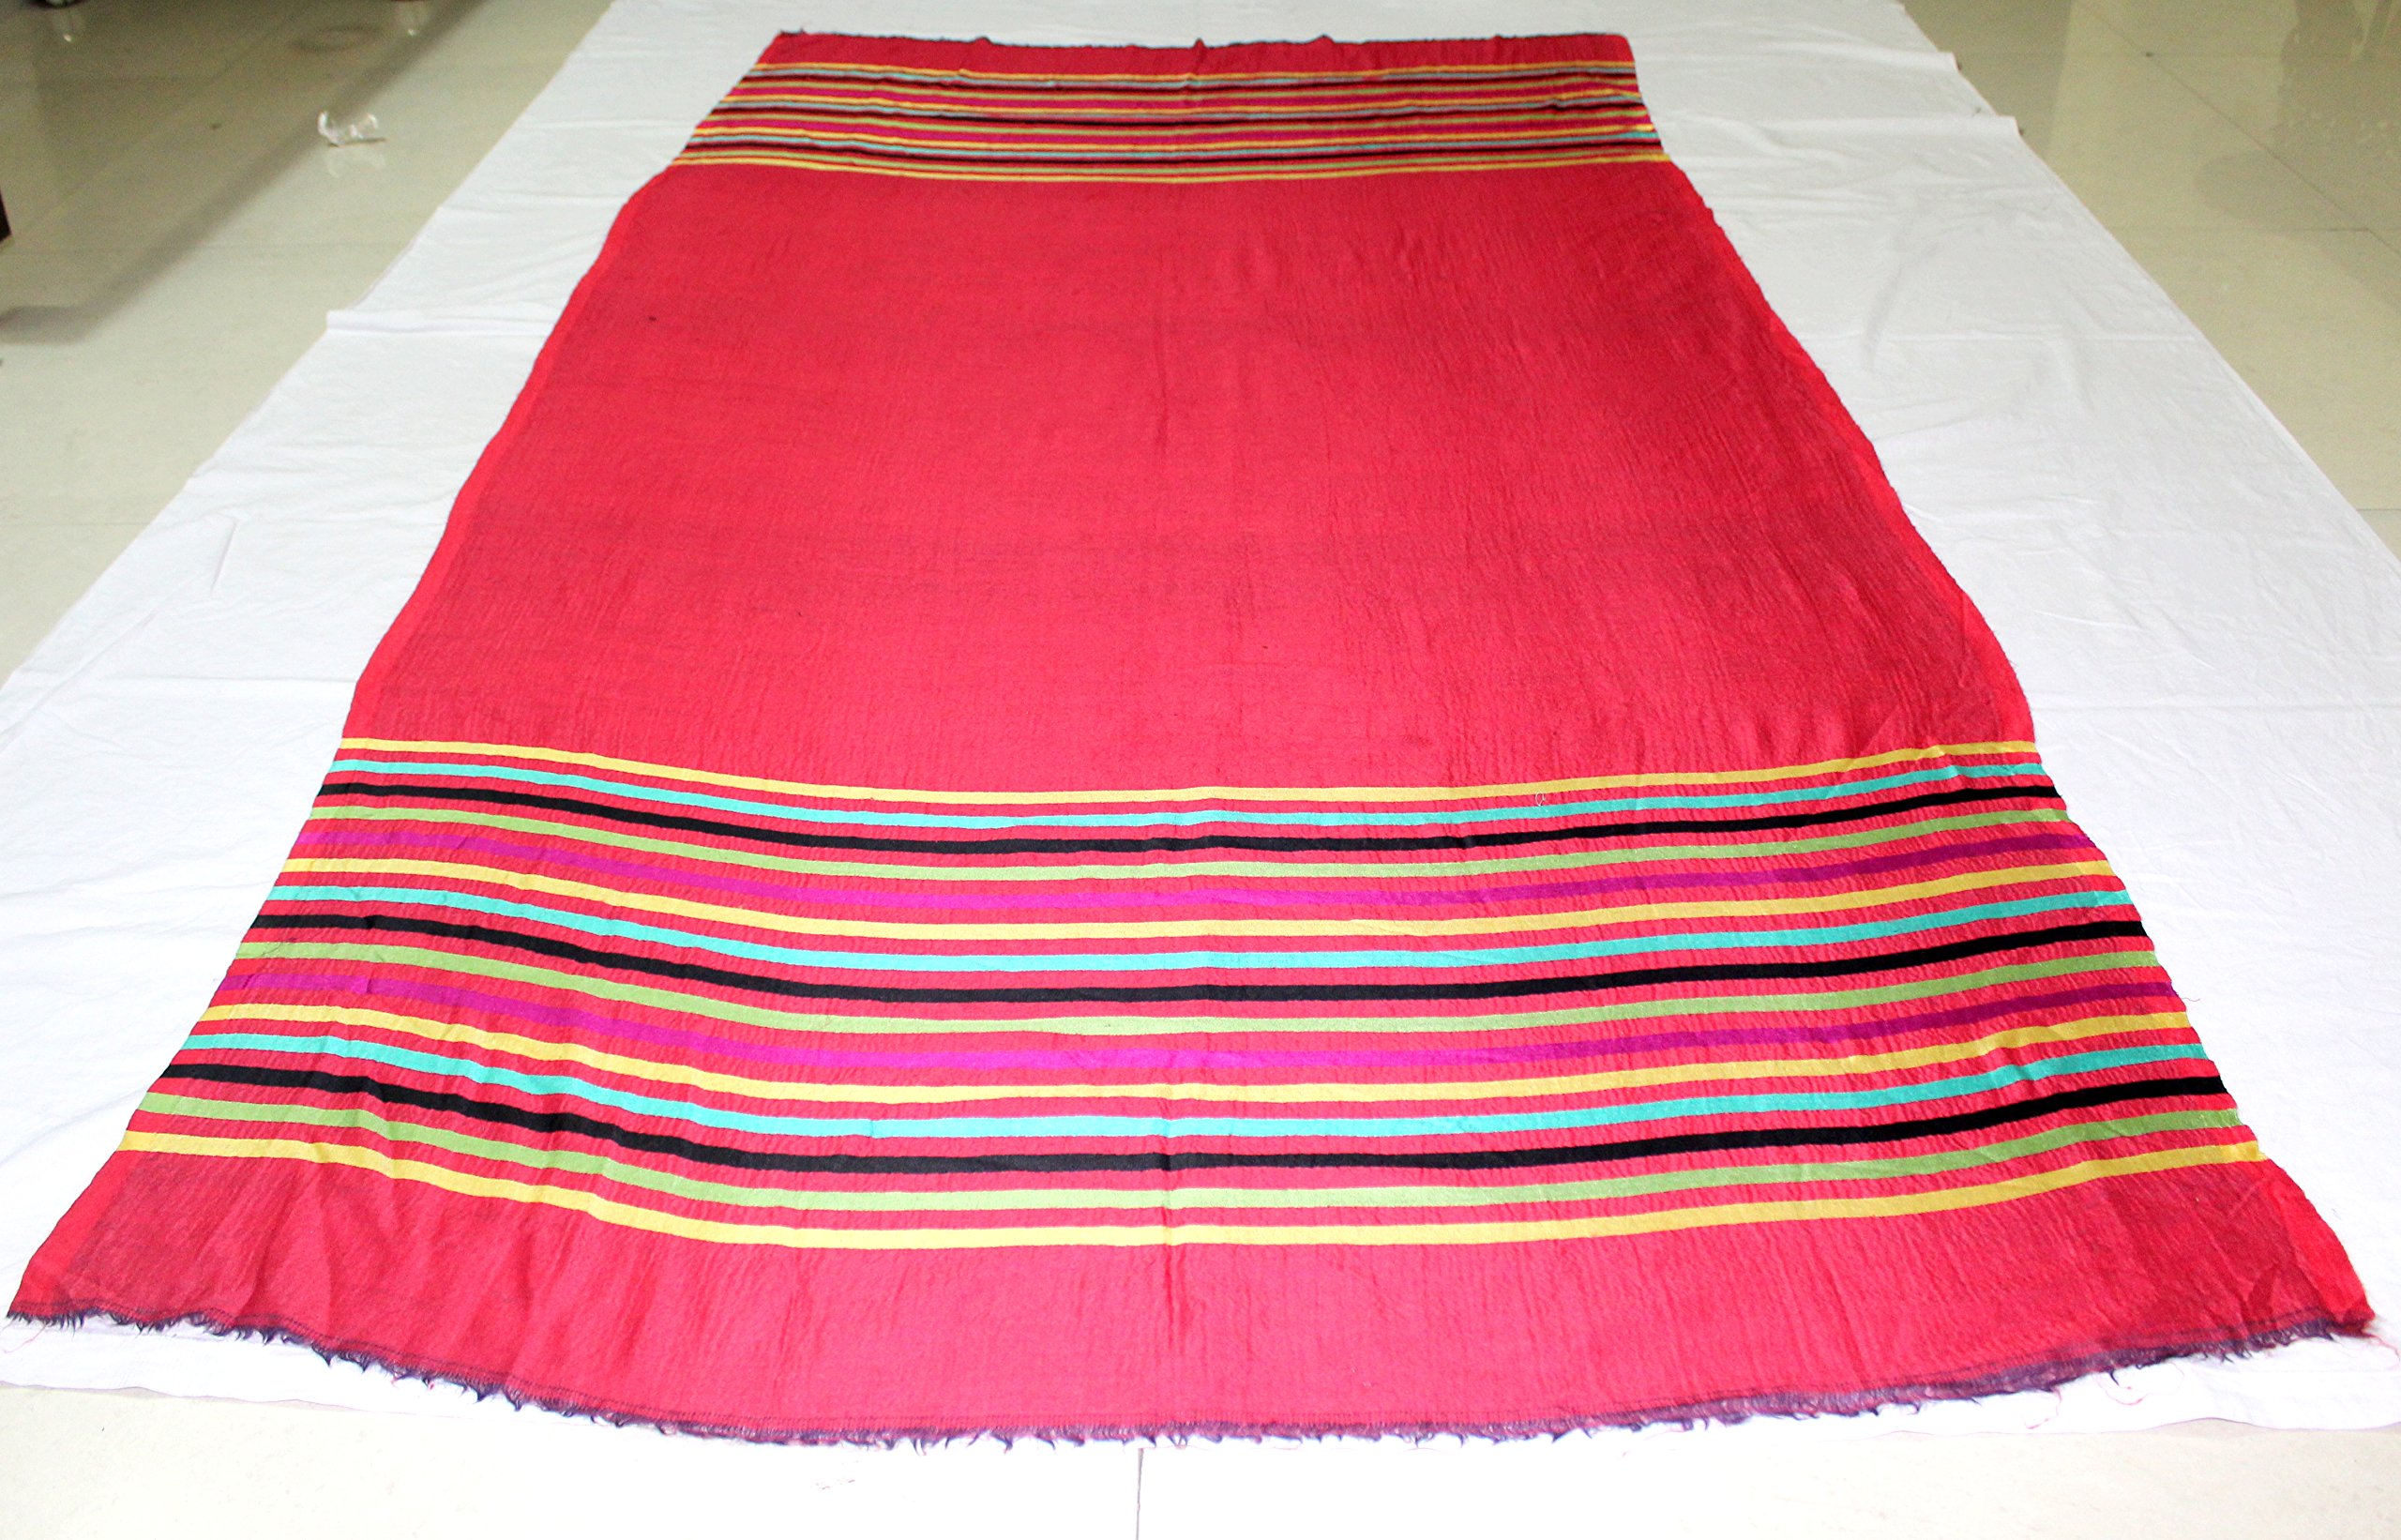 Red Pashmina scarves Colorful bridal wrap wedding shawl cashmere scarf bridesmaid gift -Size 76''x 27'' IDSC10 by iDukaancrafts (Image #7)